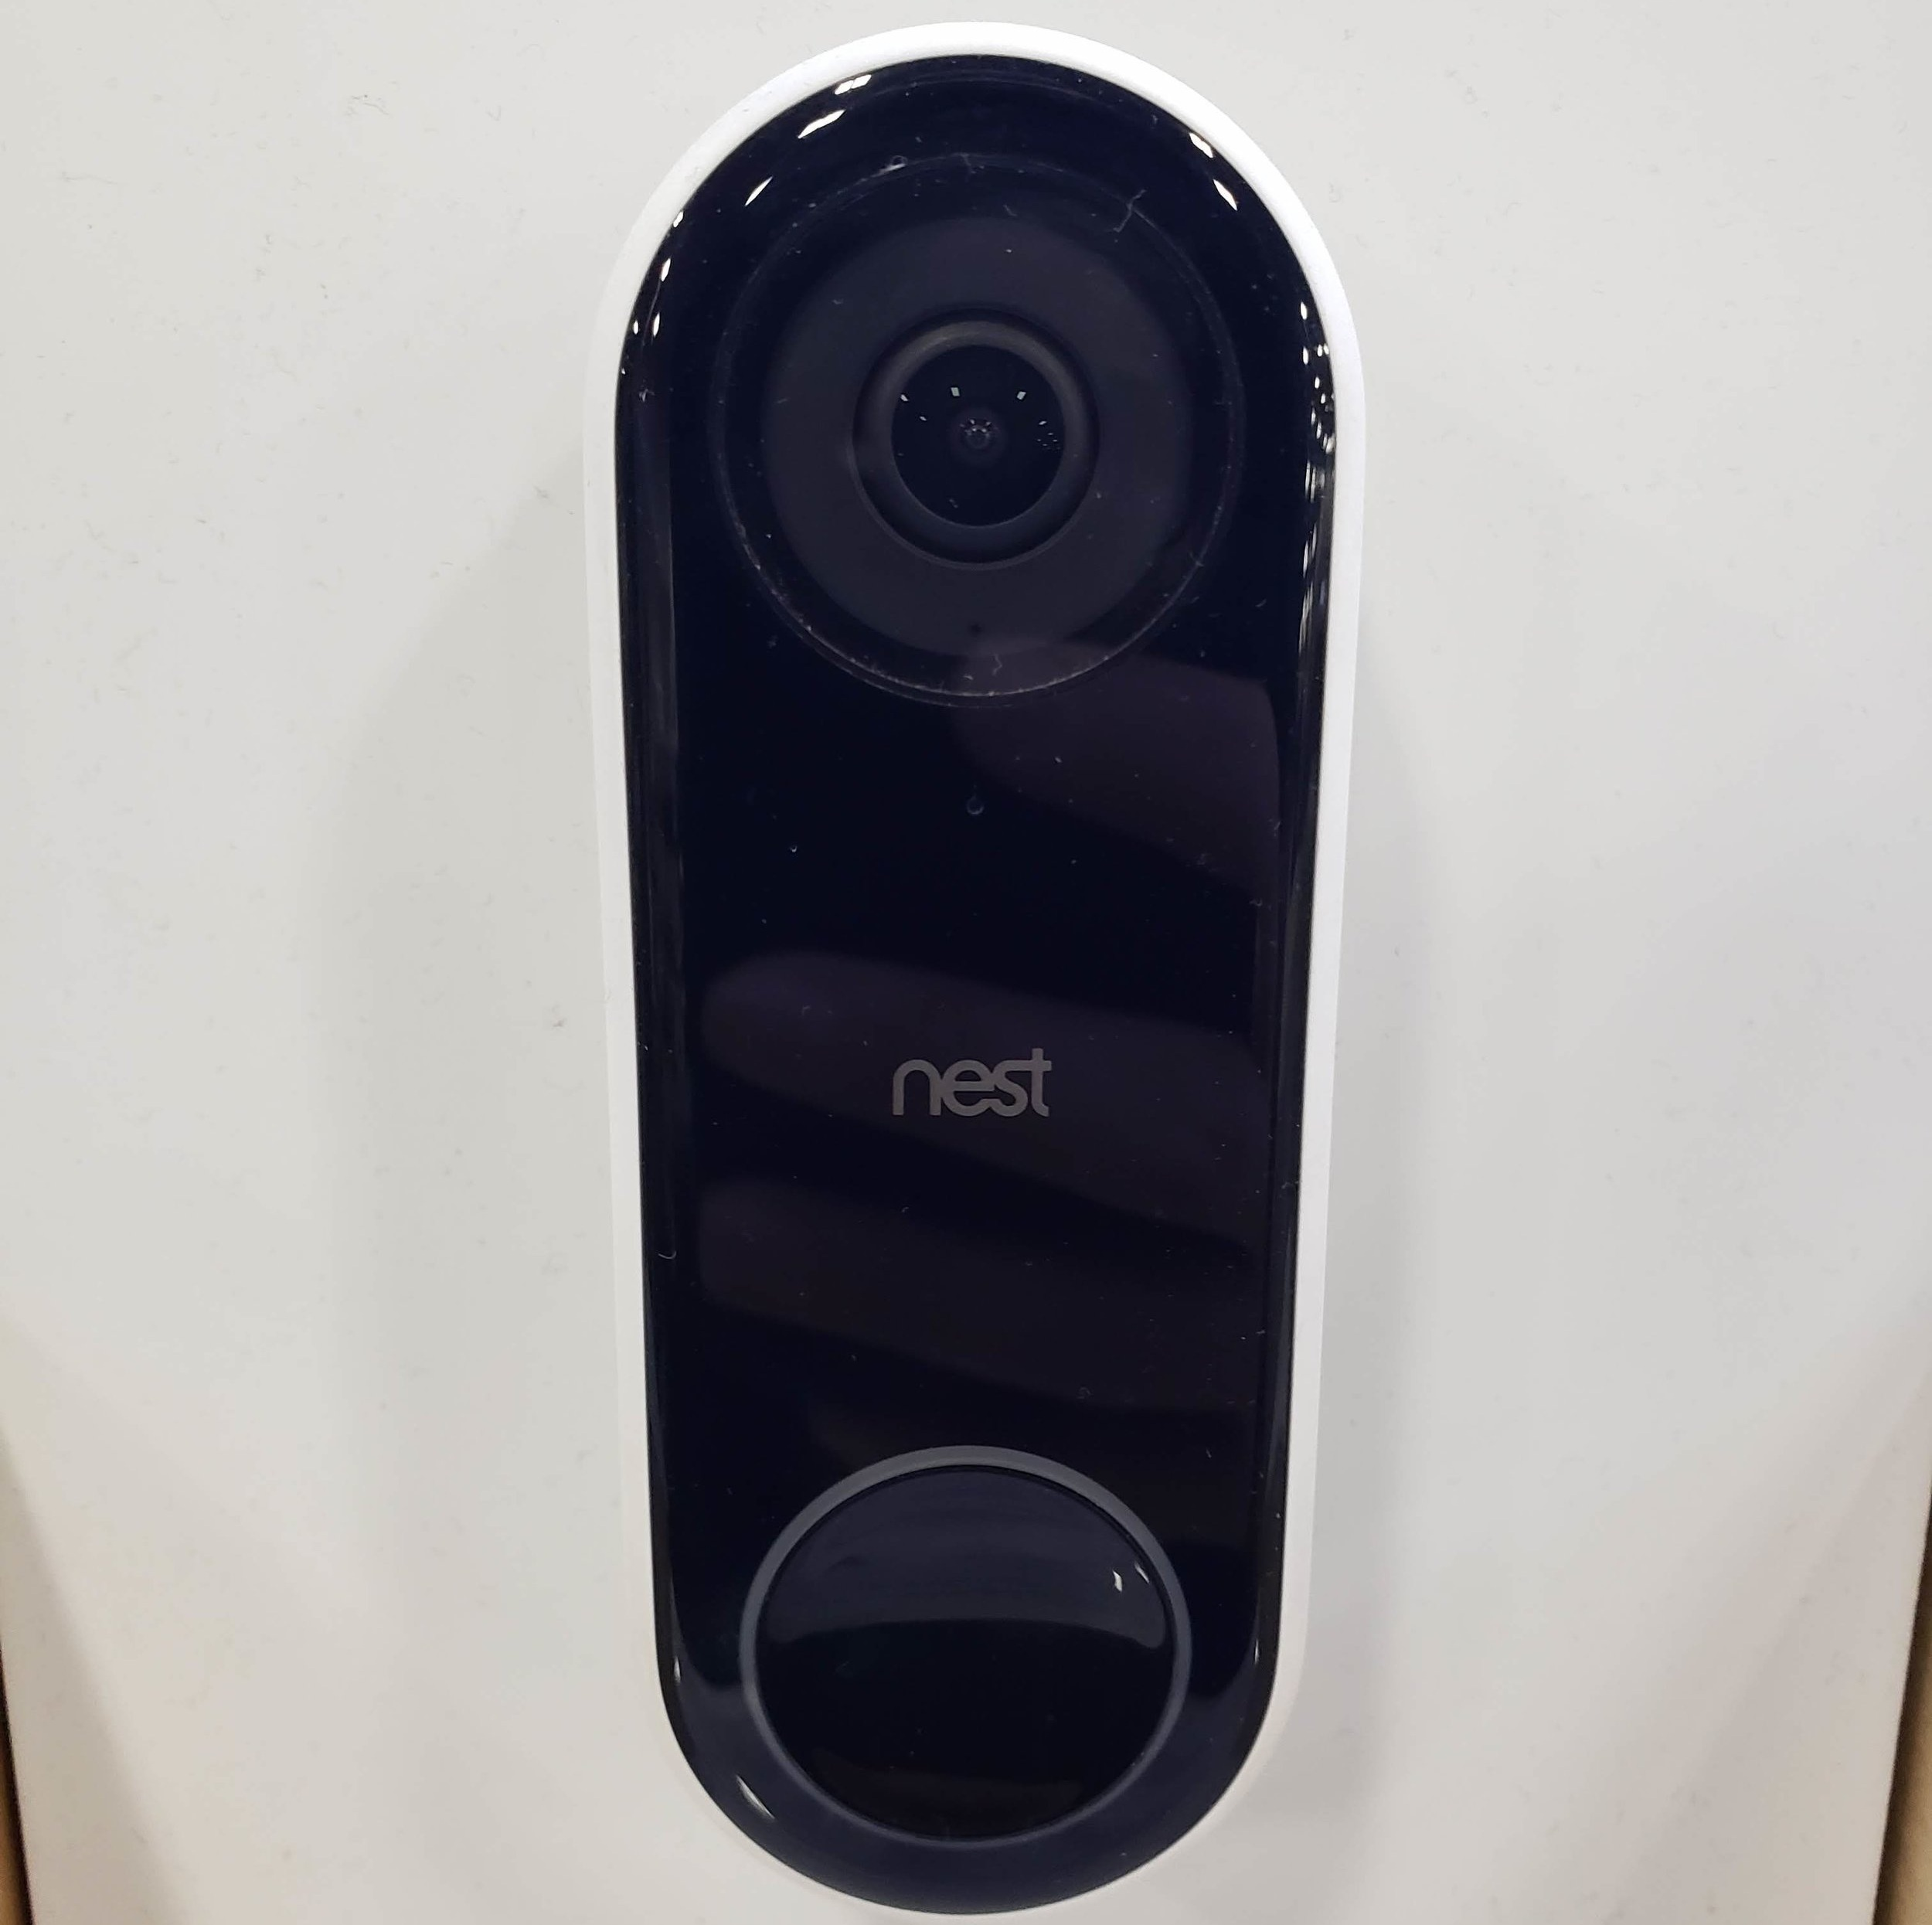 The  Nest Hello Smart Doorbell  is a great add on to any home if they already have a  Nest Thermostat